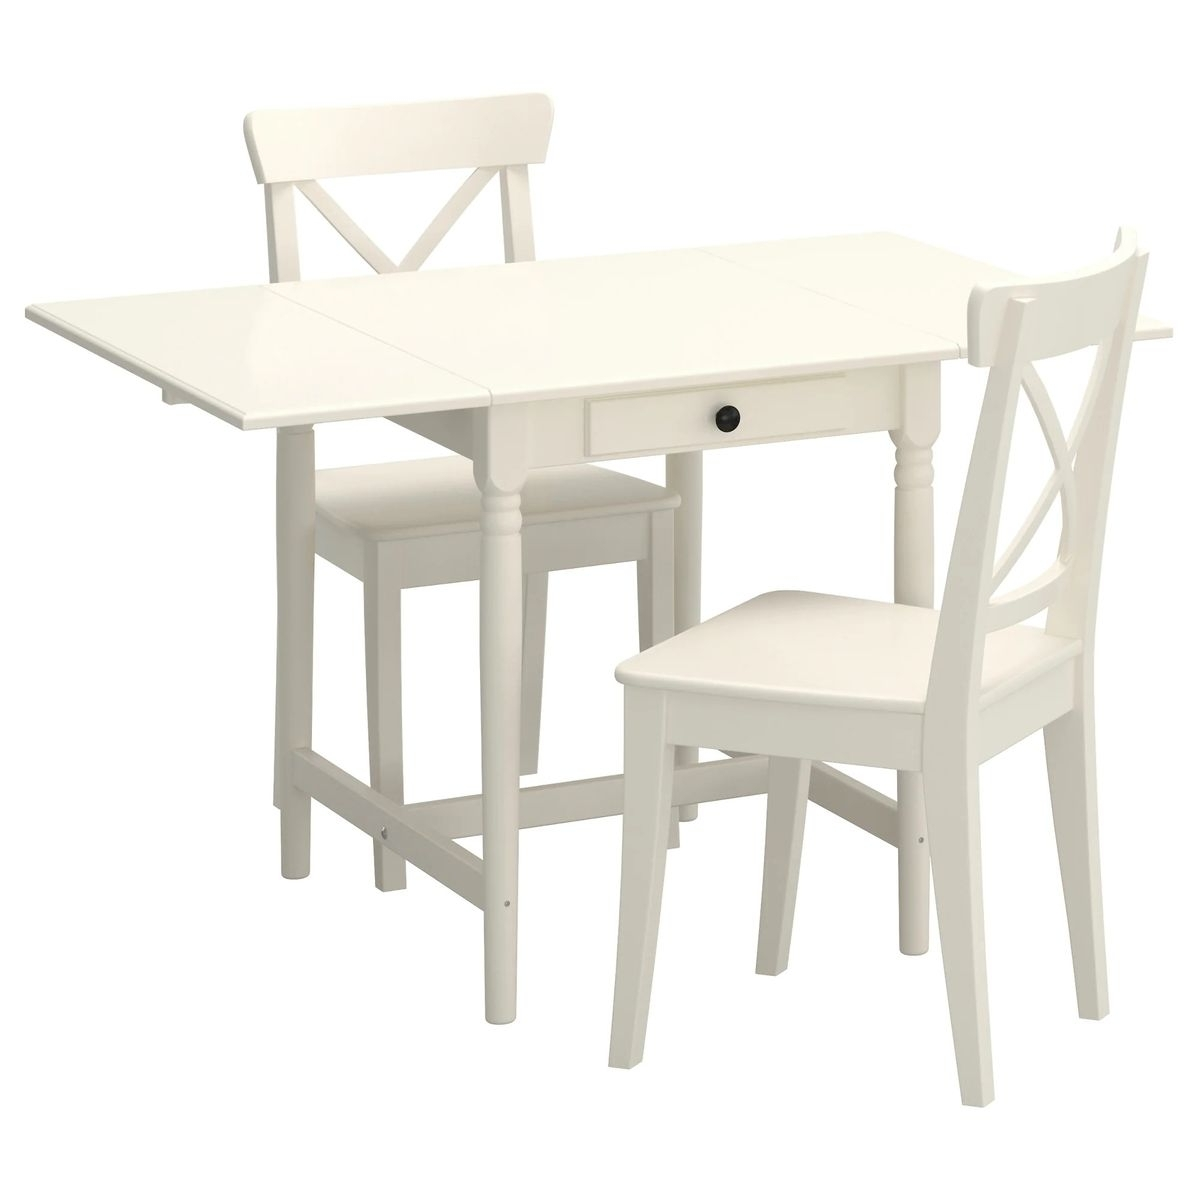 Widely Used Small Dining Tables For Apartments – Curbed For Dining Tables For Two (View 25 of 25)